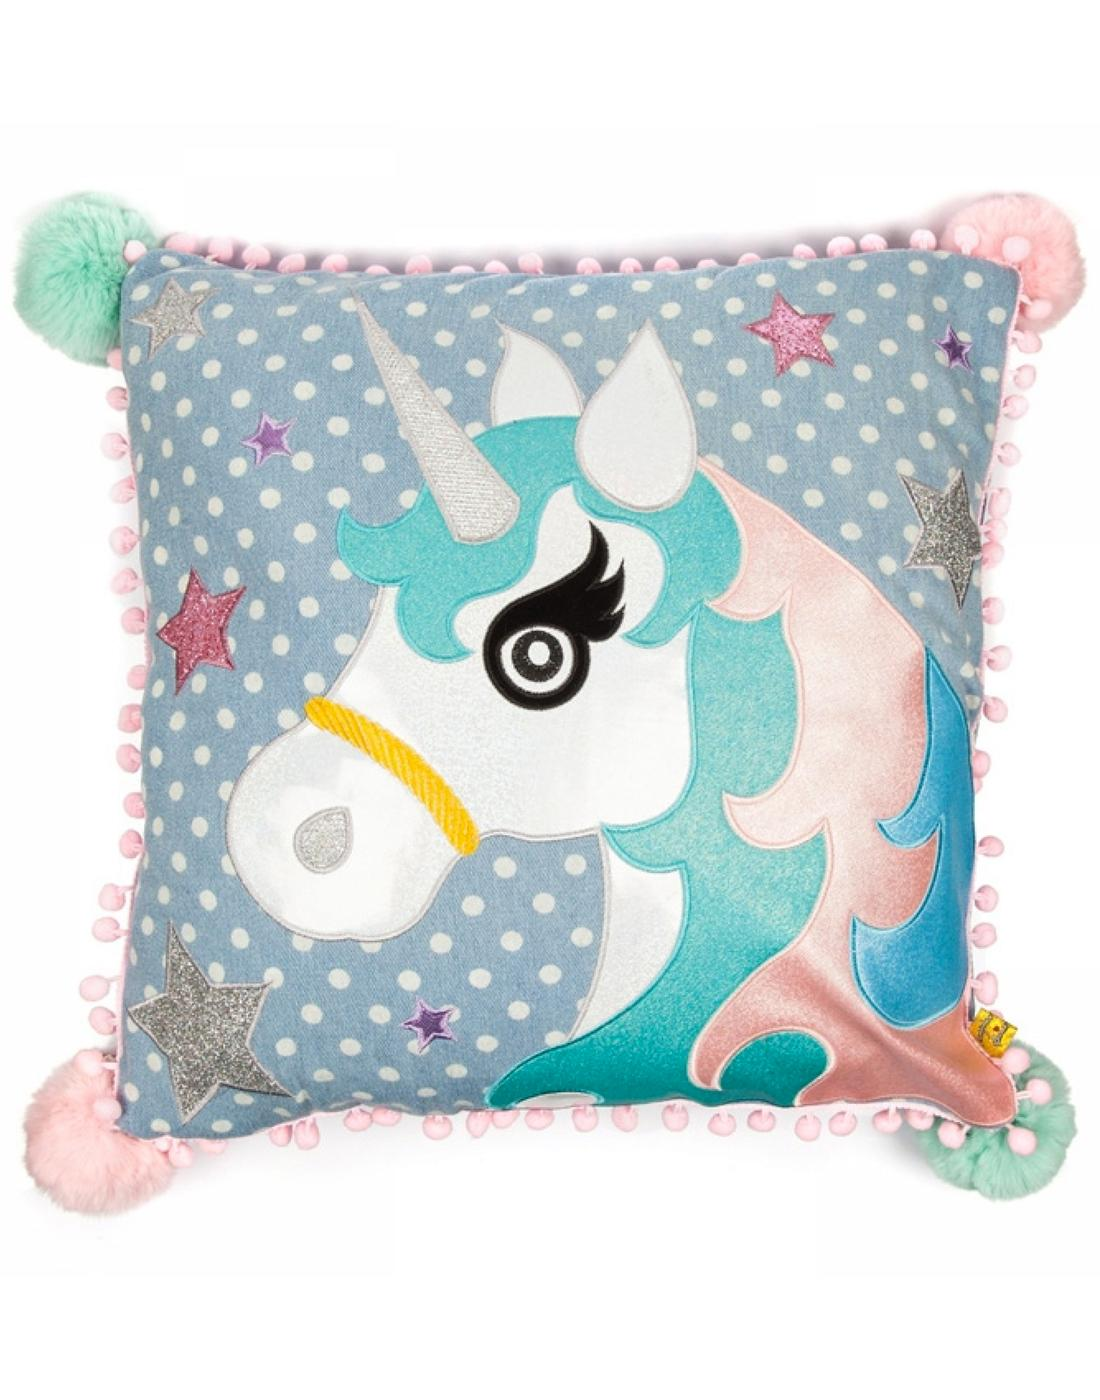 IRREGULAR CHOICE Misty Reigns Cuddler Cushion